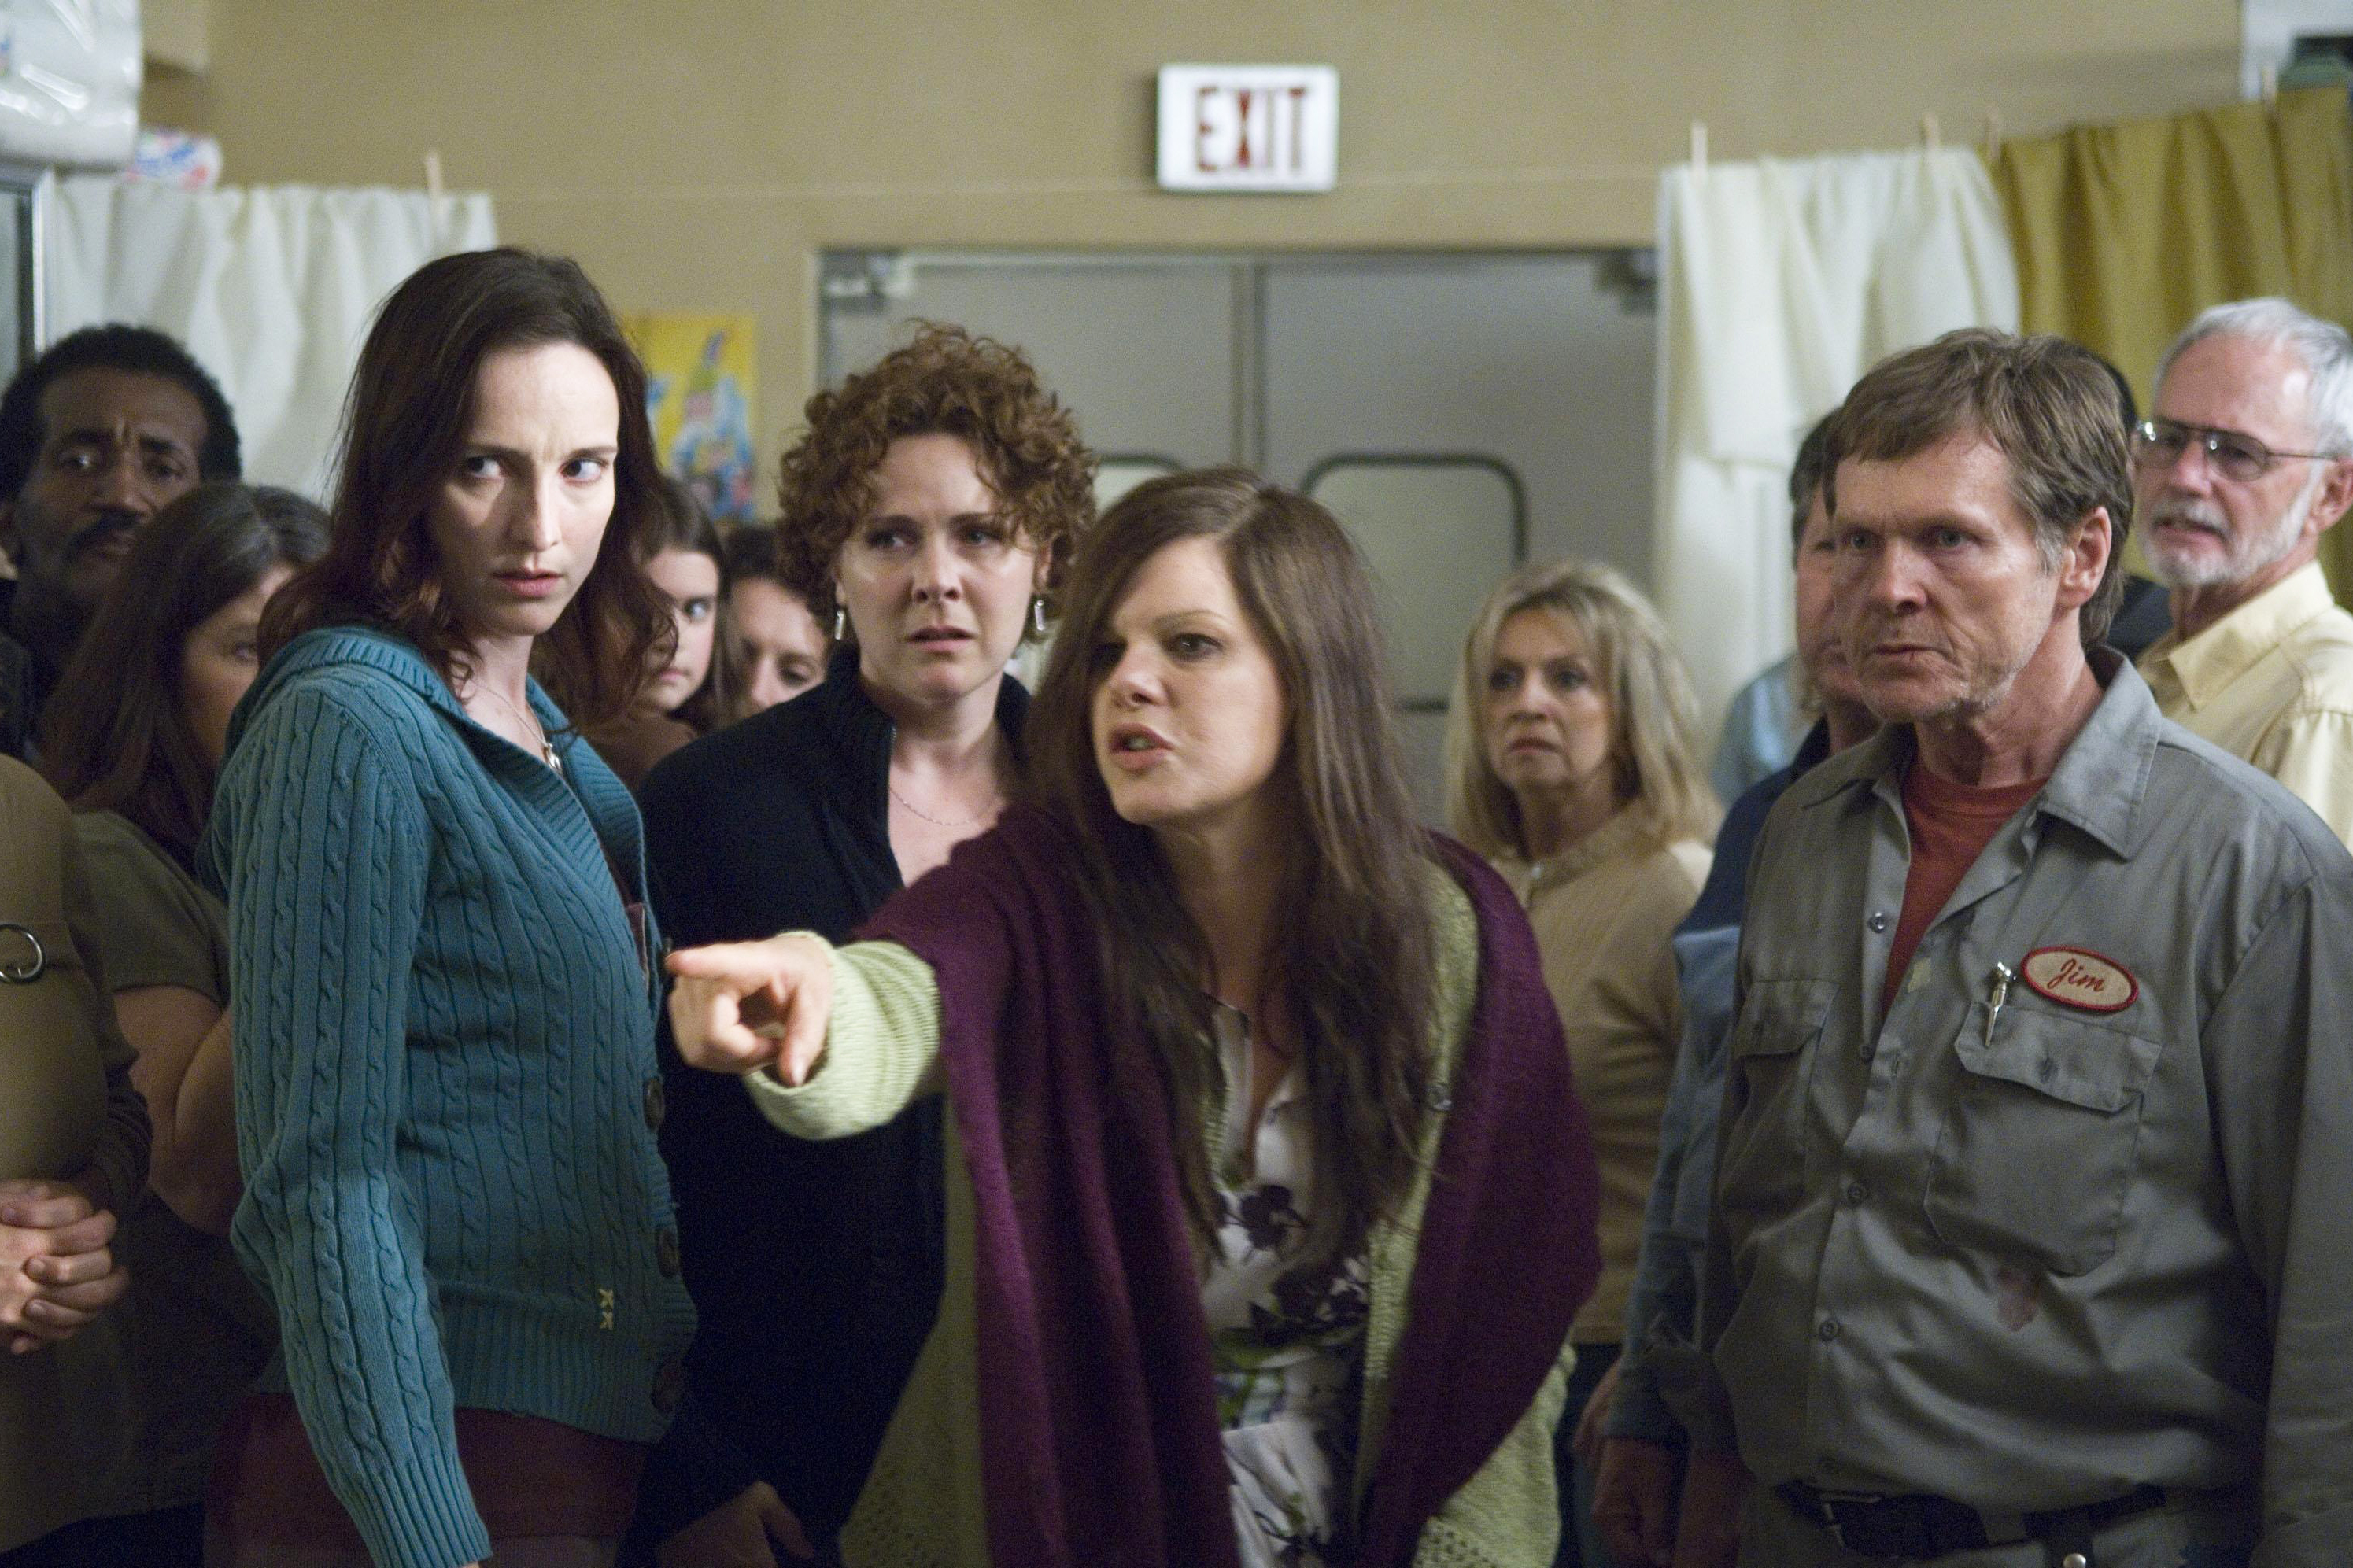 The Mist (2007); A TV series based on Stephen King's horror novella is coming to Spike in 2017. The movie starred Marcia Gay Haden (center) as a religious fanatic.